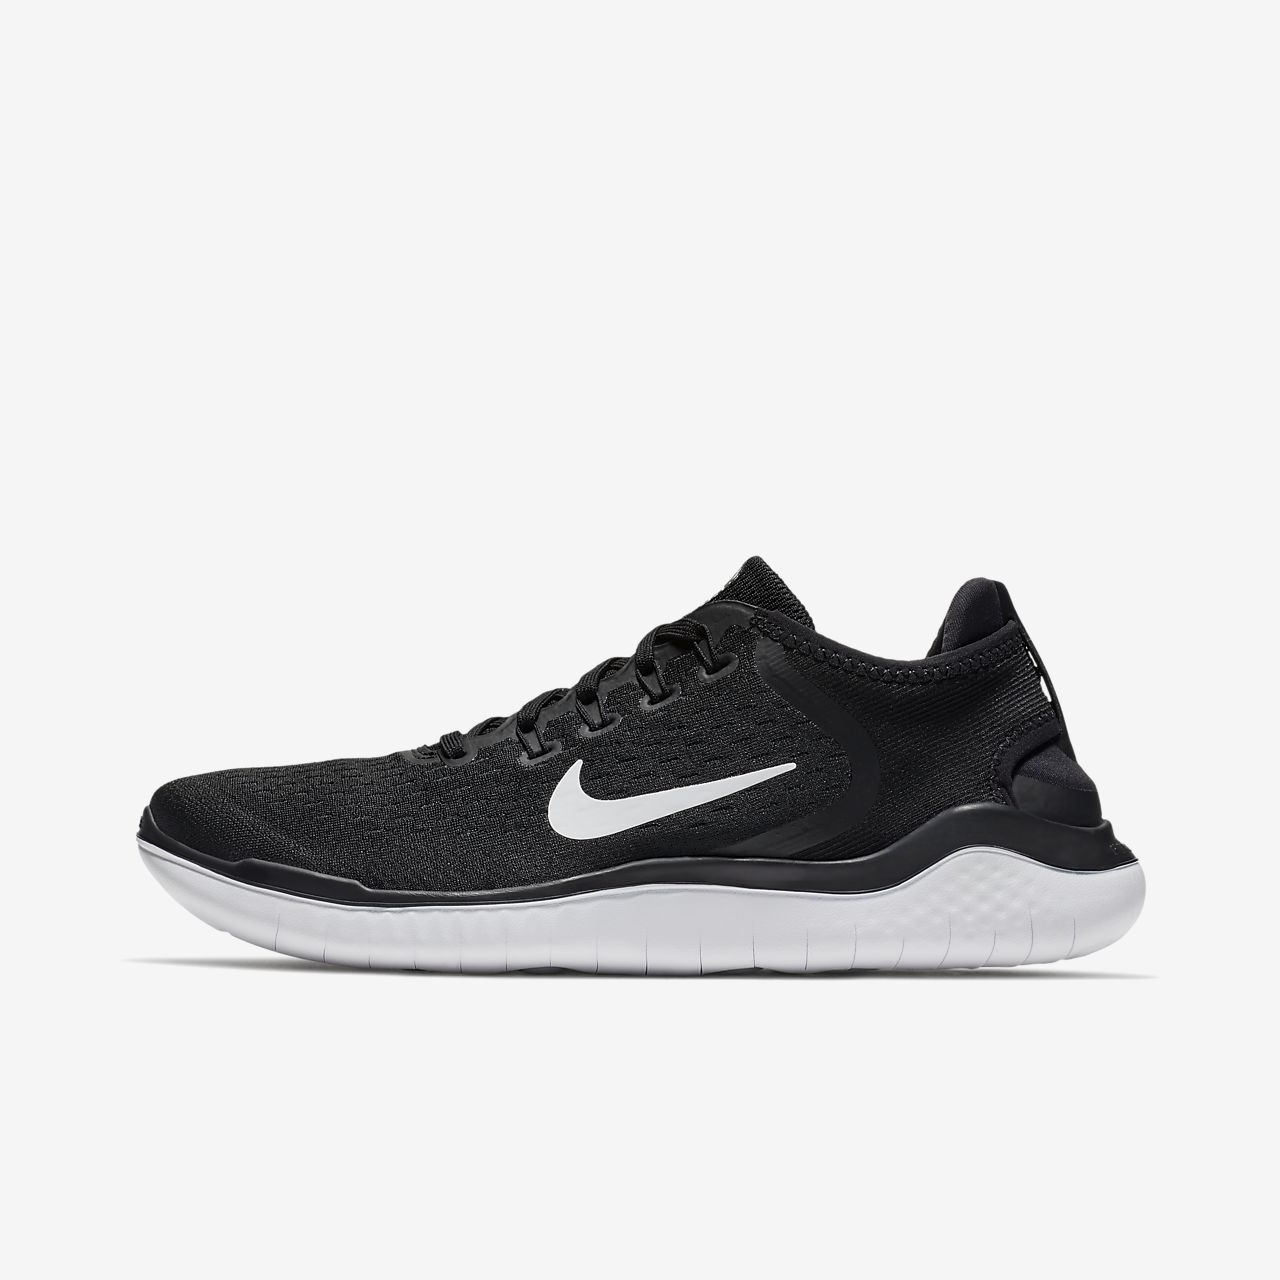 info for 08bd1 d6e71 Men s Running Shoe. Nike Free RN 2018